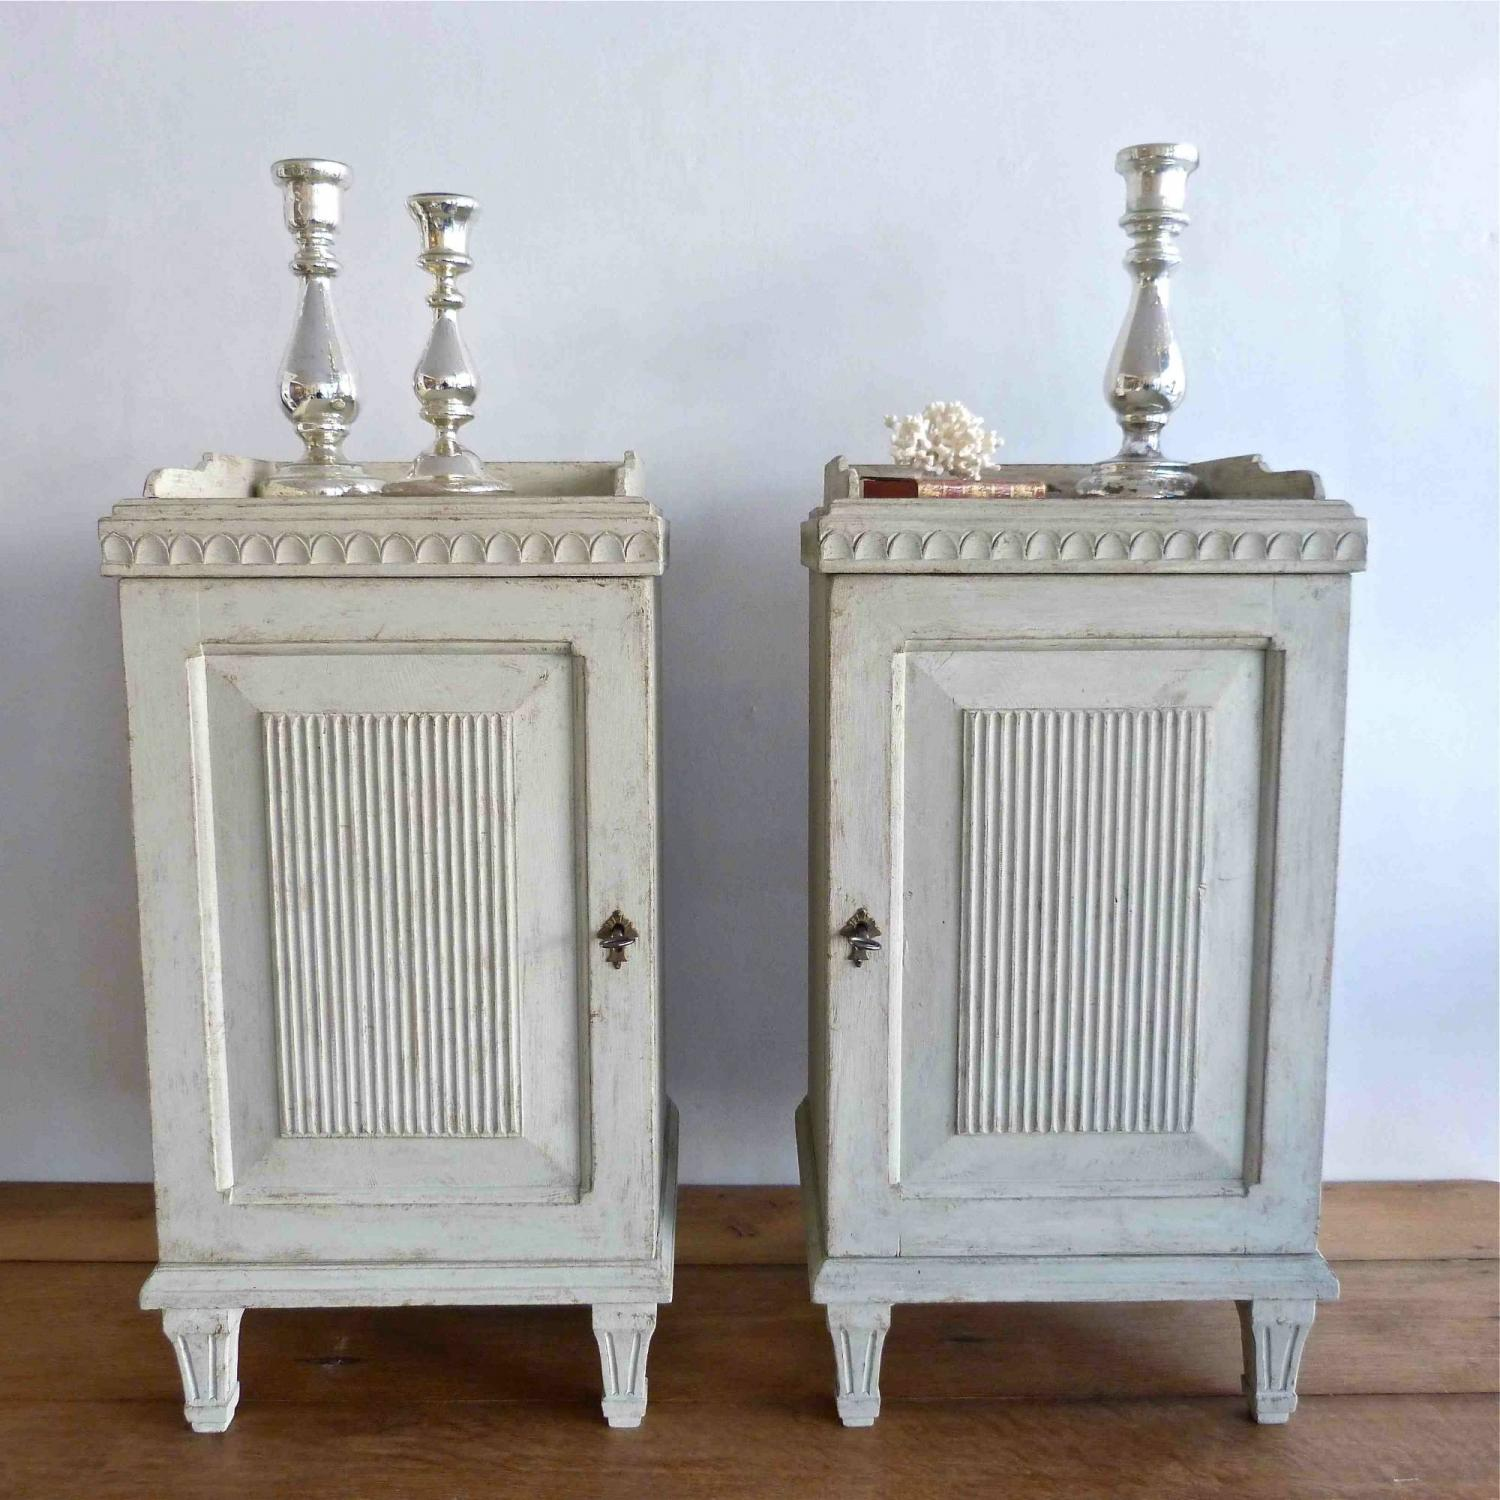 Beau A PAIR OF SWEDISH GUSTAVIAN STYLE BEDSIDE CABINETS   Picture 1 ...